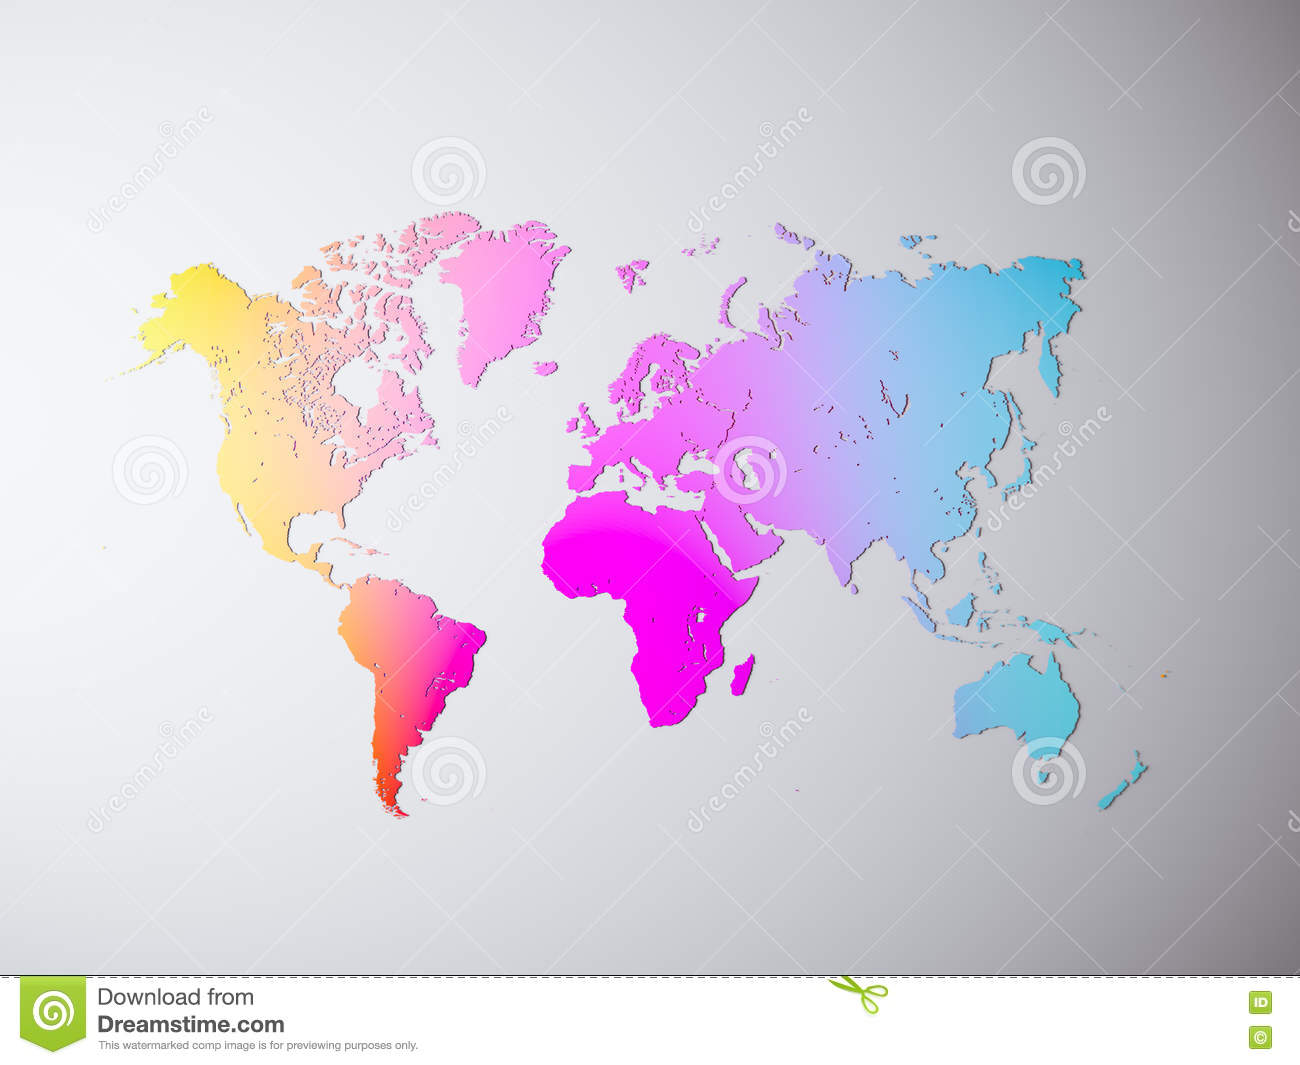 Blank multicolor texture political world map 3d rendering empty download blank multicolor texture political world map 3d rendering empty concrete wall background gumiabroncs Image collections